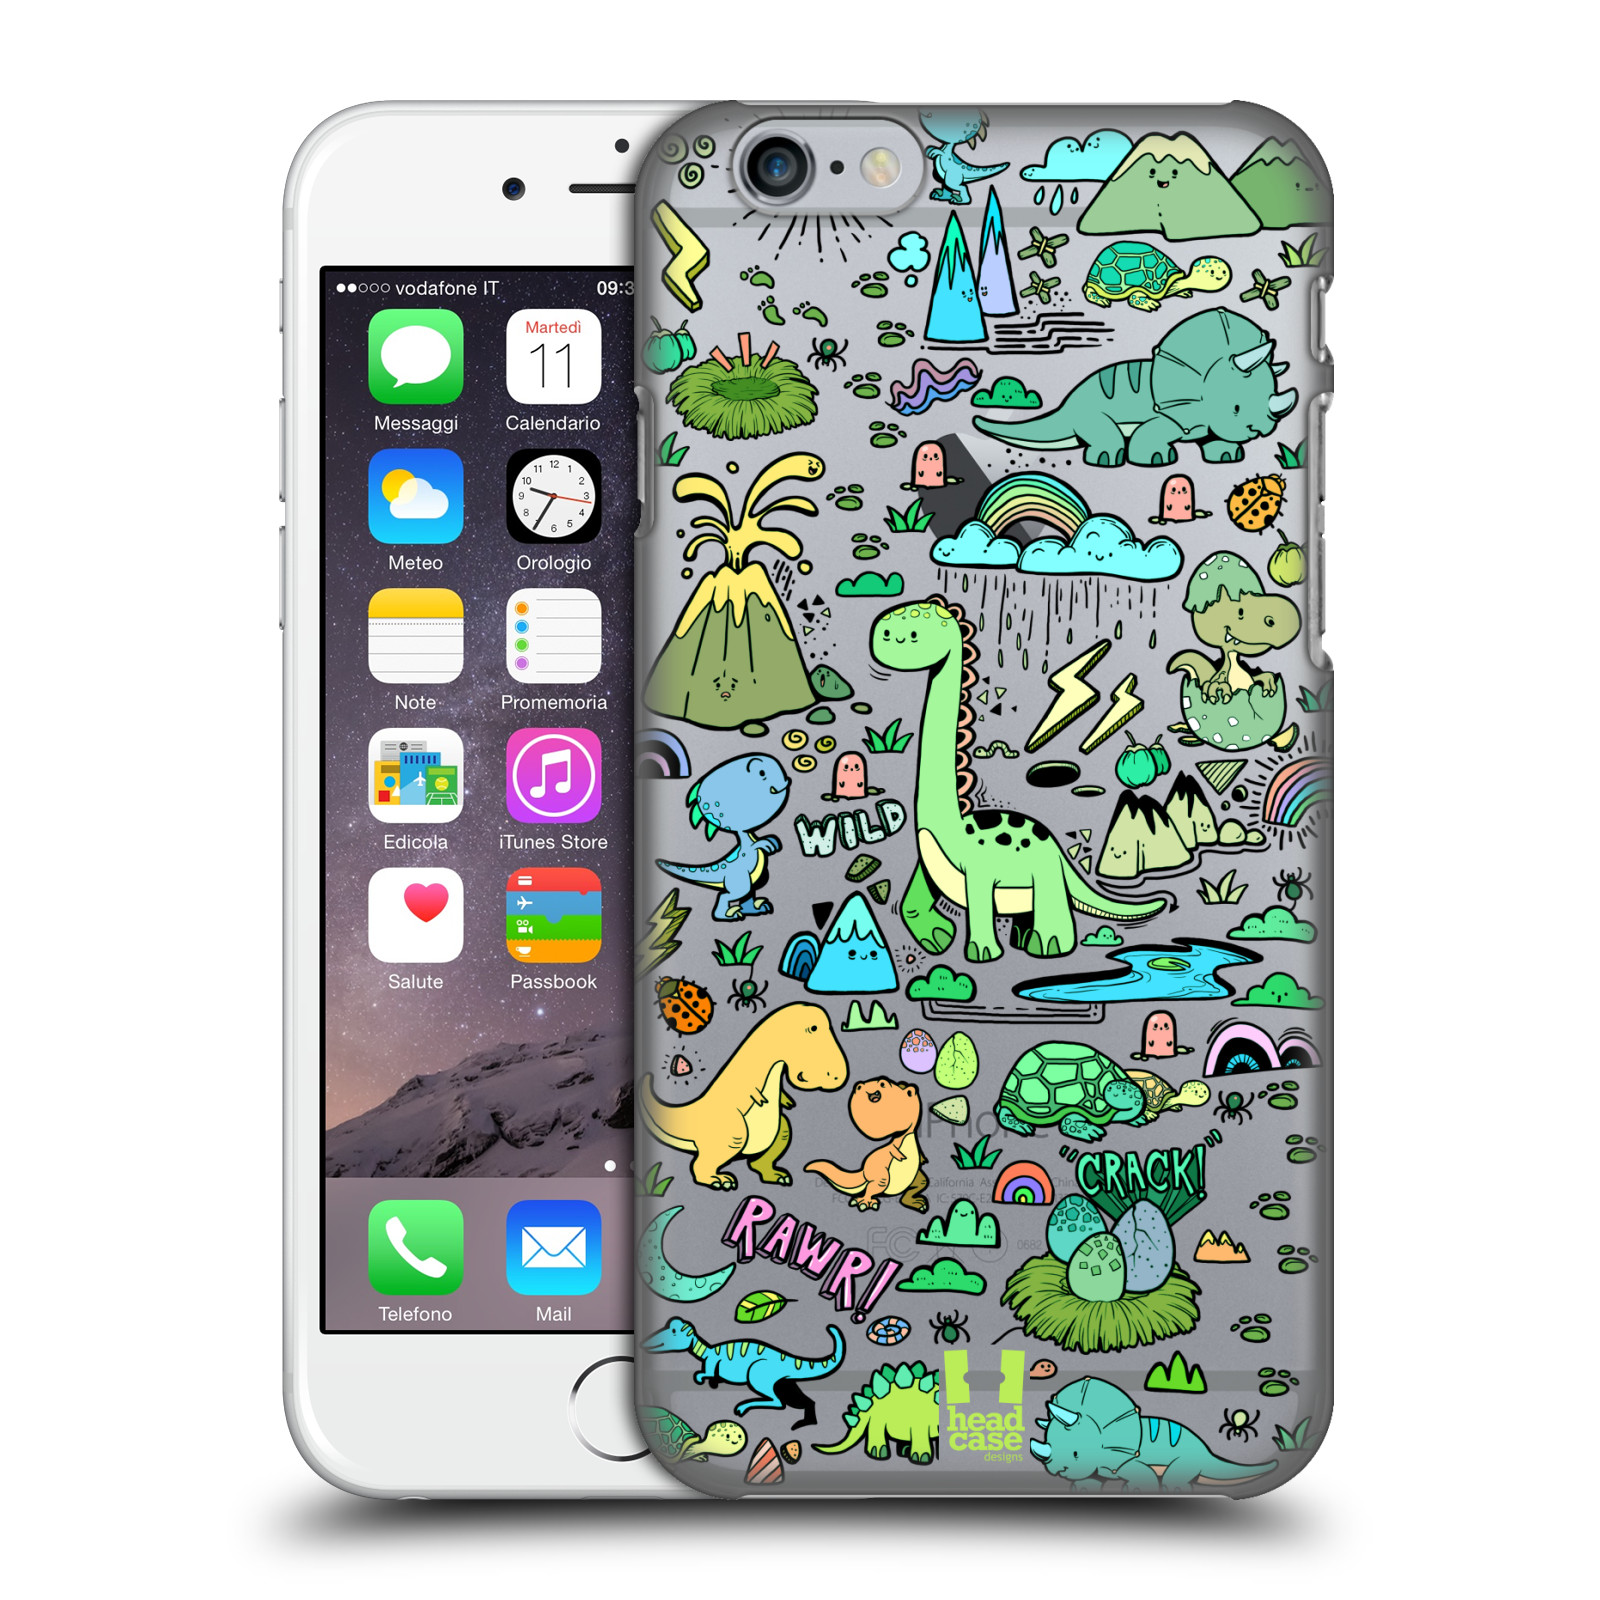 HEAD-CASE-DESIGNS-PREHISTORIC-PATTERNS-HARD-BACK-CASE-FOR-APPLE-iPHONE-PHONES